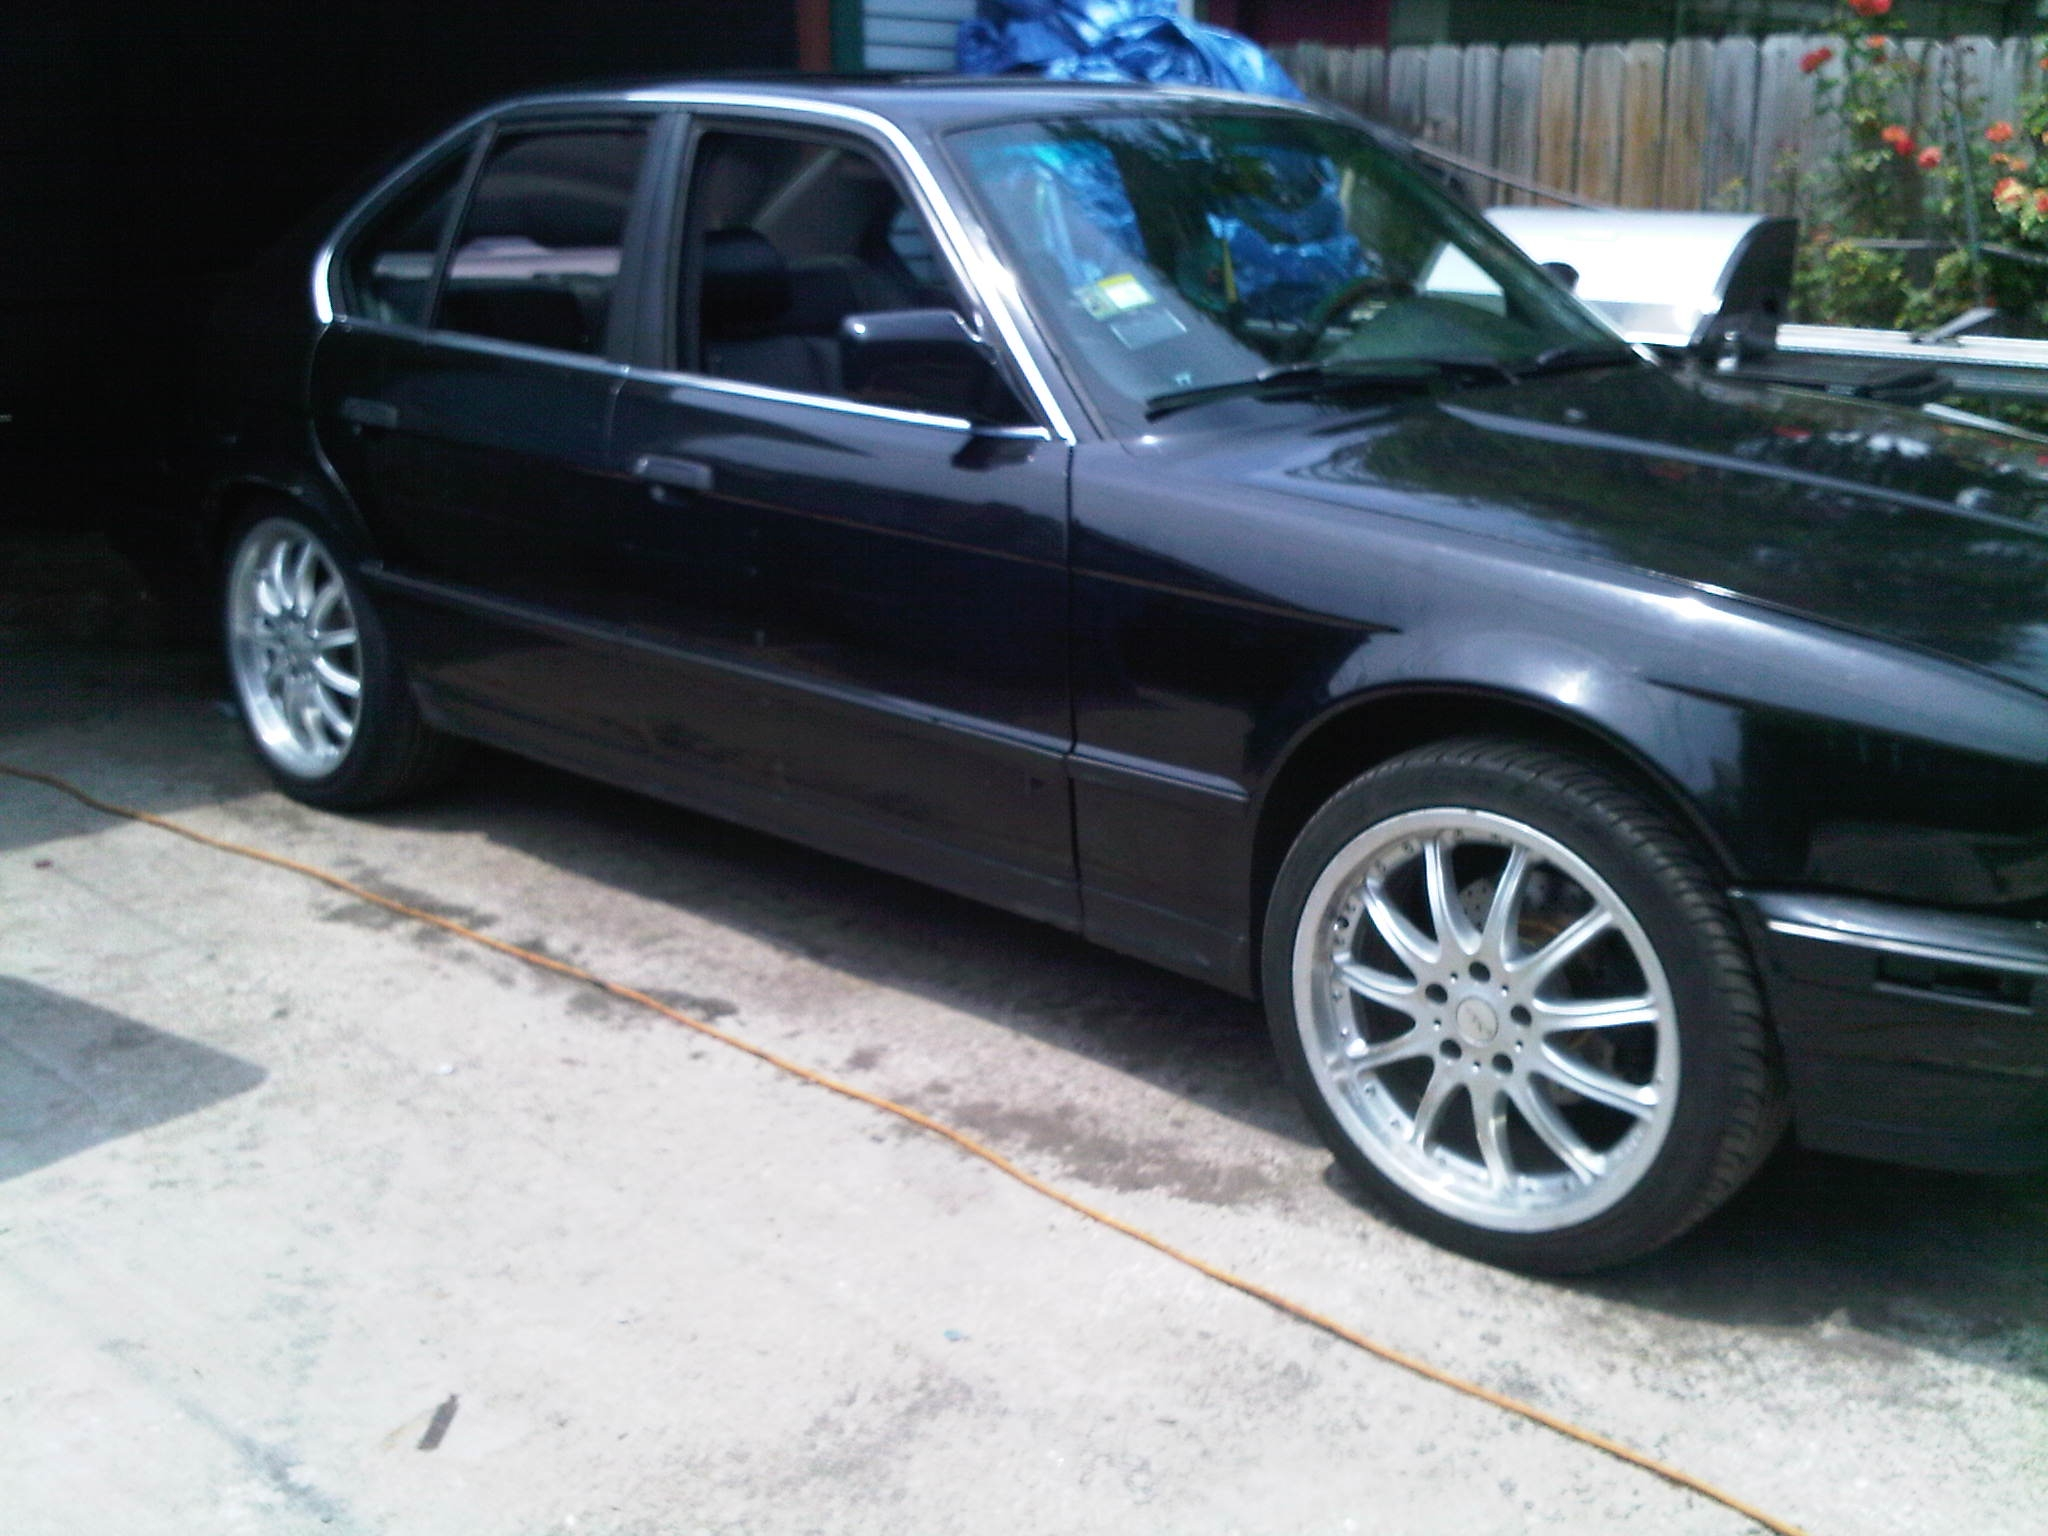 blk 5 in the chi 39 s 1992 bmw 5 series in chicago il. Black Bedroom Furniture Sets. Home Design Ideas